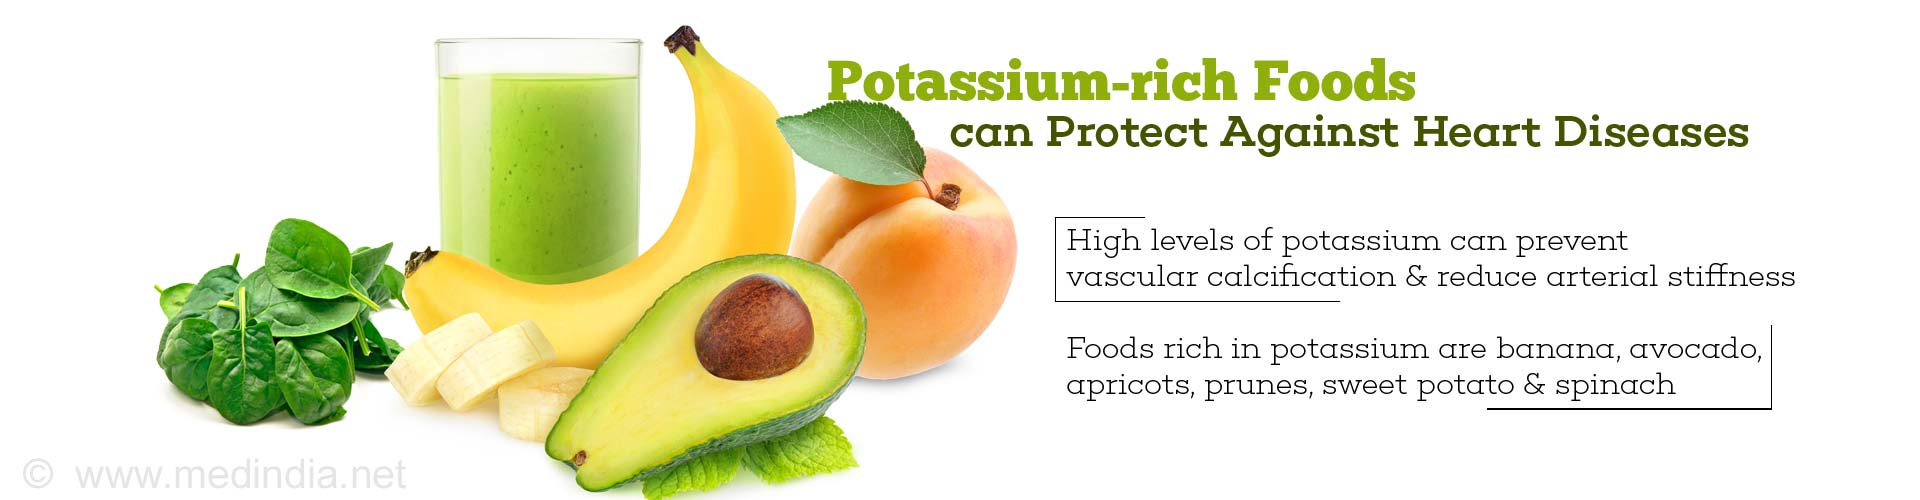 Potassium-rich Foods can Protect Against Heart Diseases